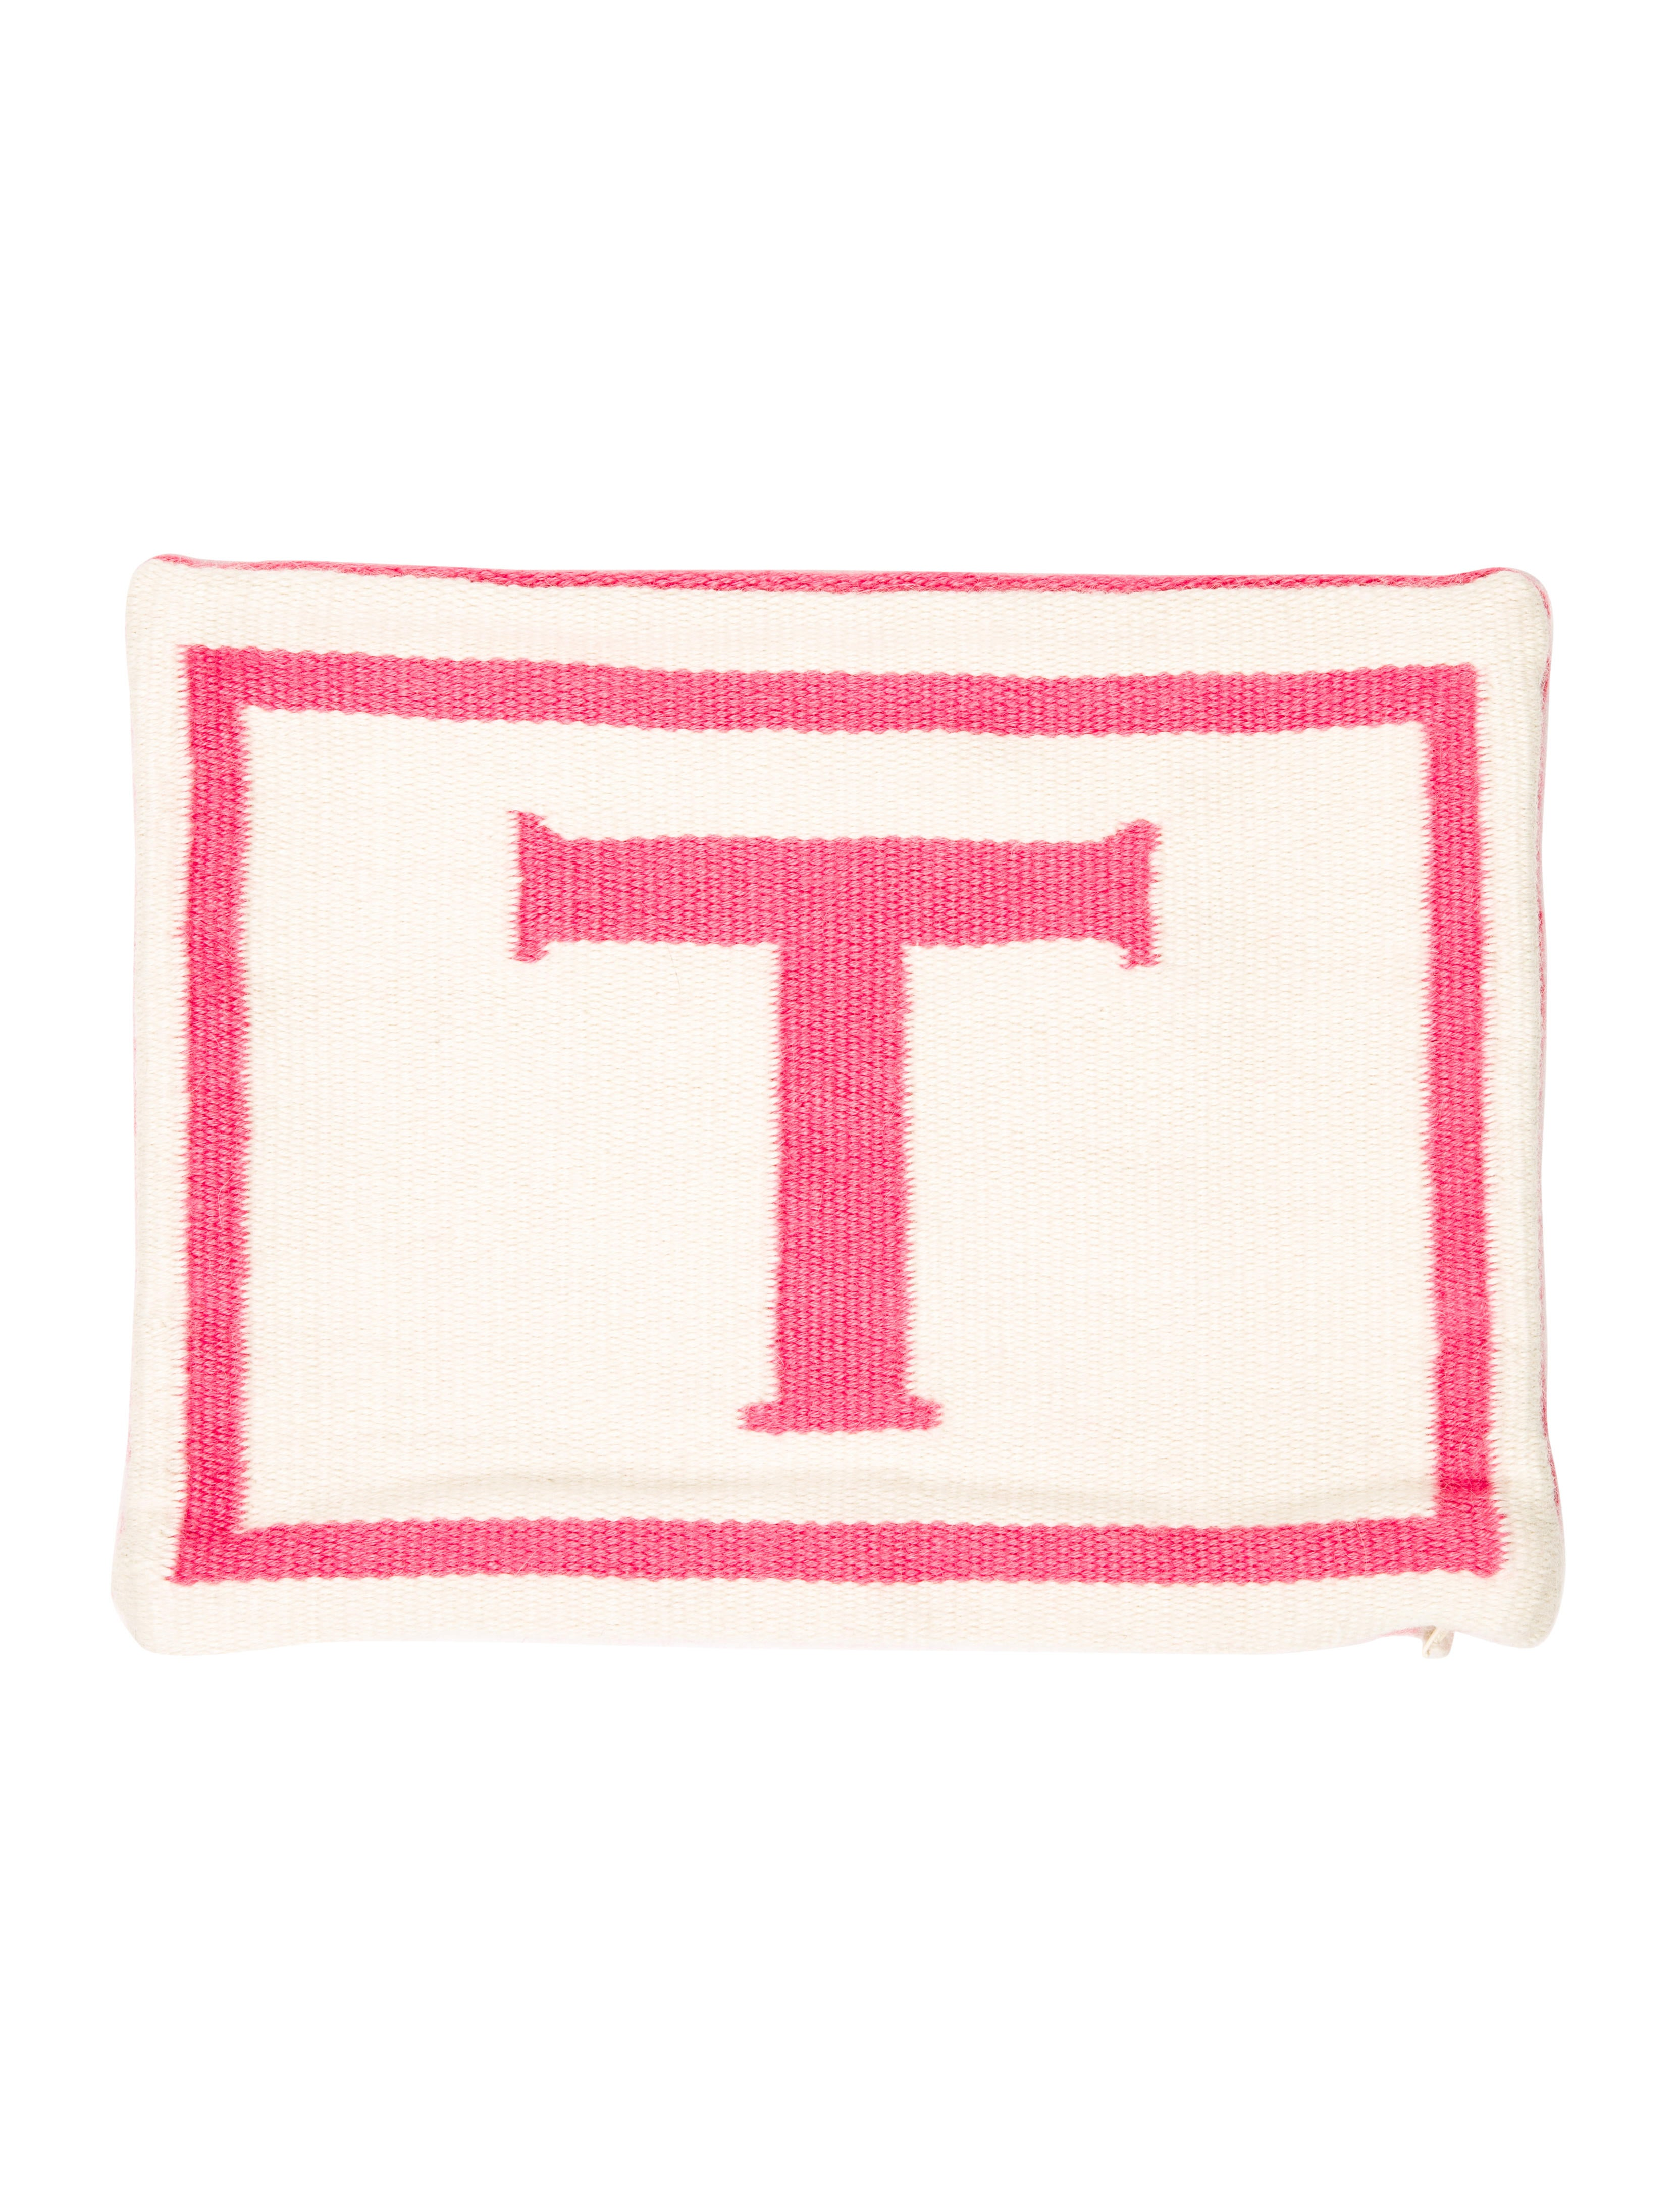 Letter T Throw Pillow : Jonathan Adler Reversible Junior Letter Throw Pillow Case w/ Tags - Bedding And Bath ...